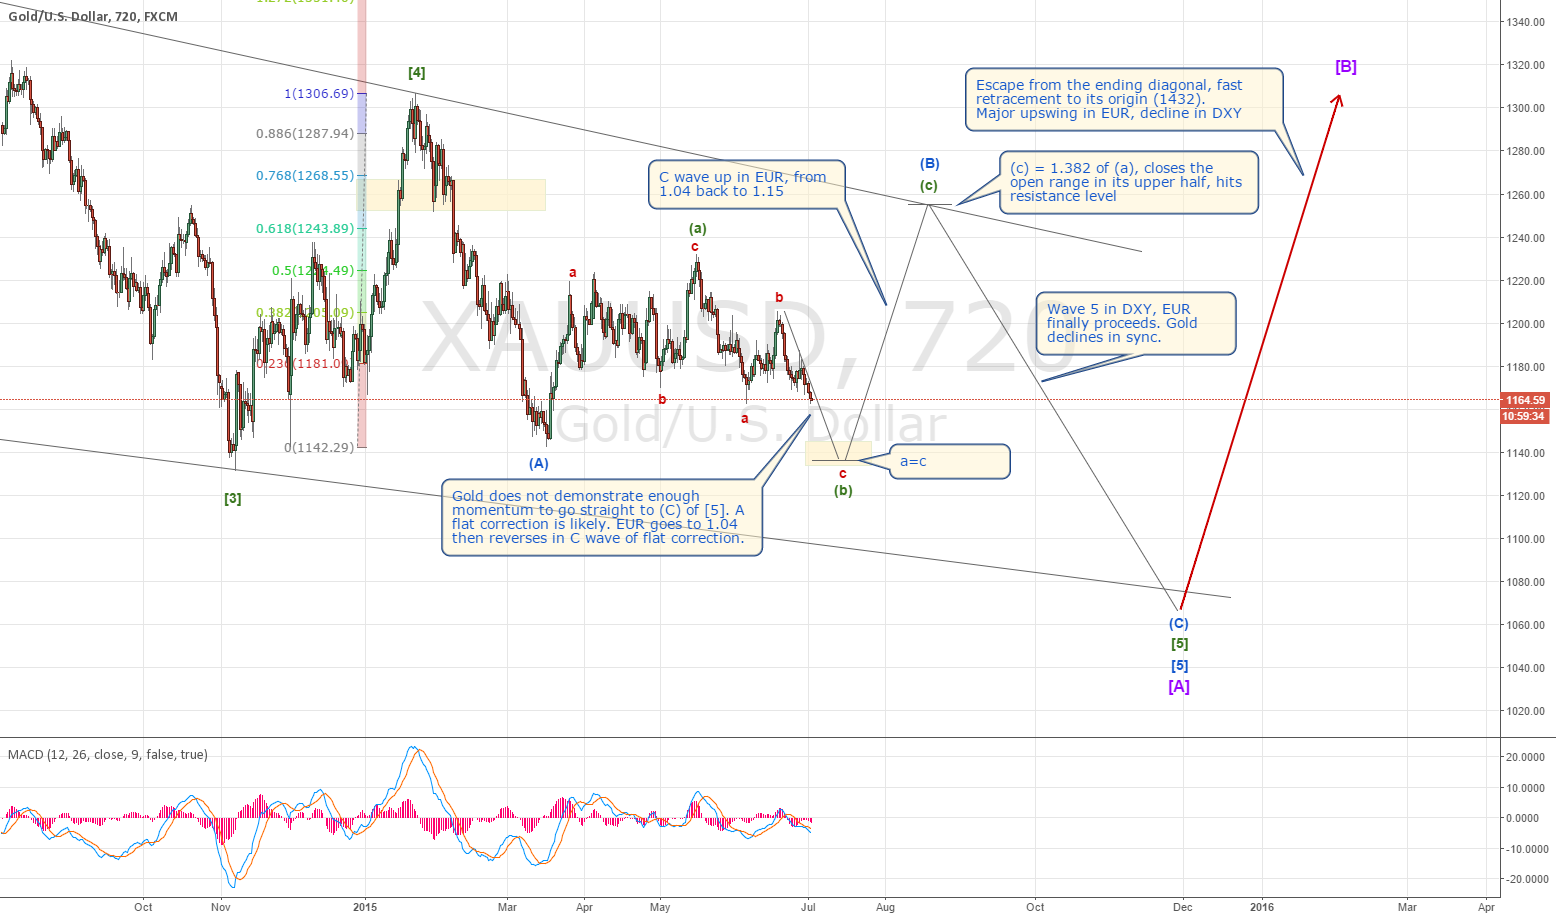 Gold and EUR alignment and wave count